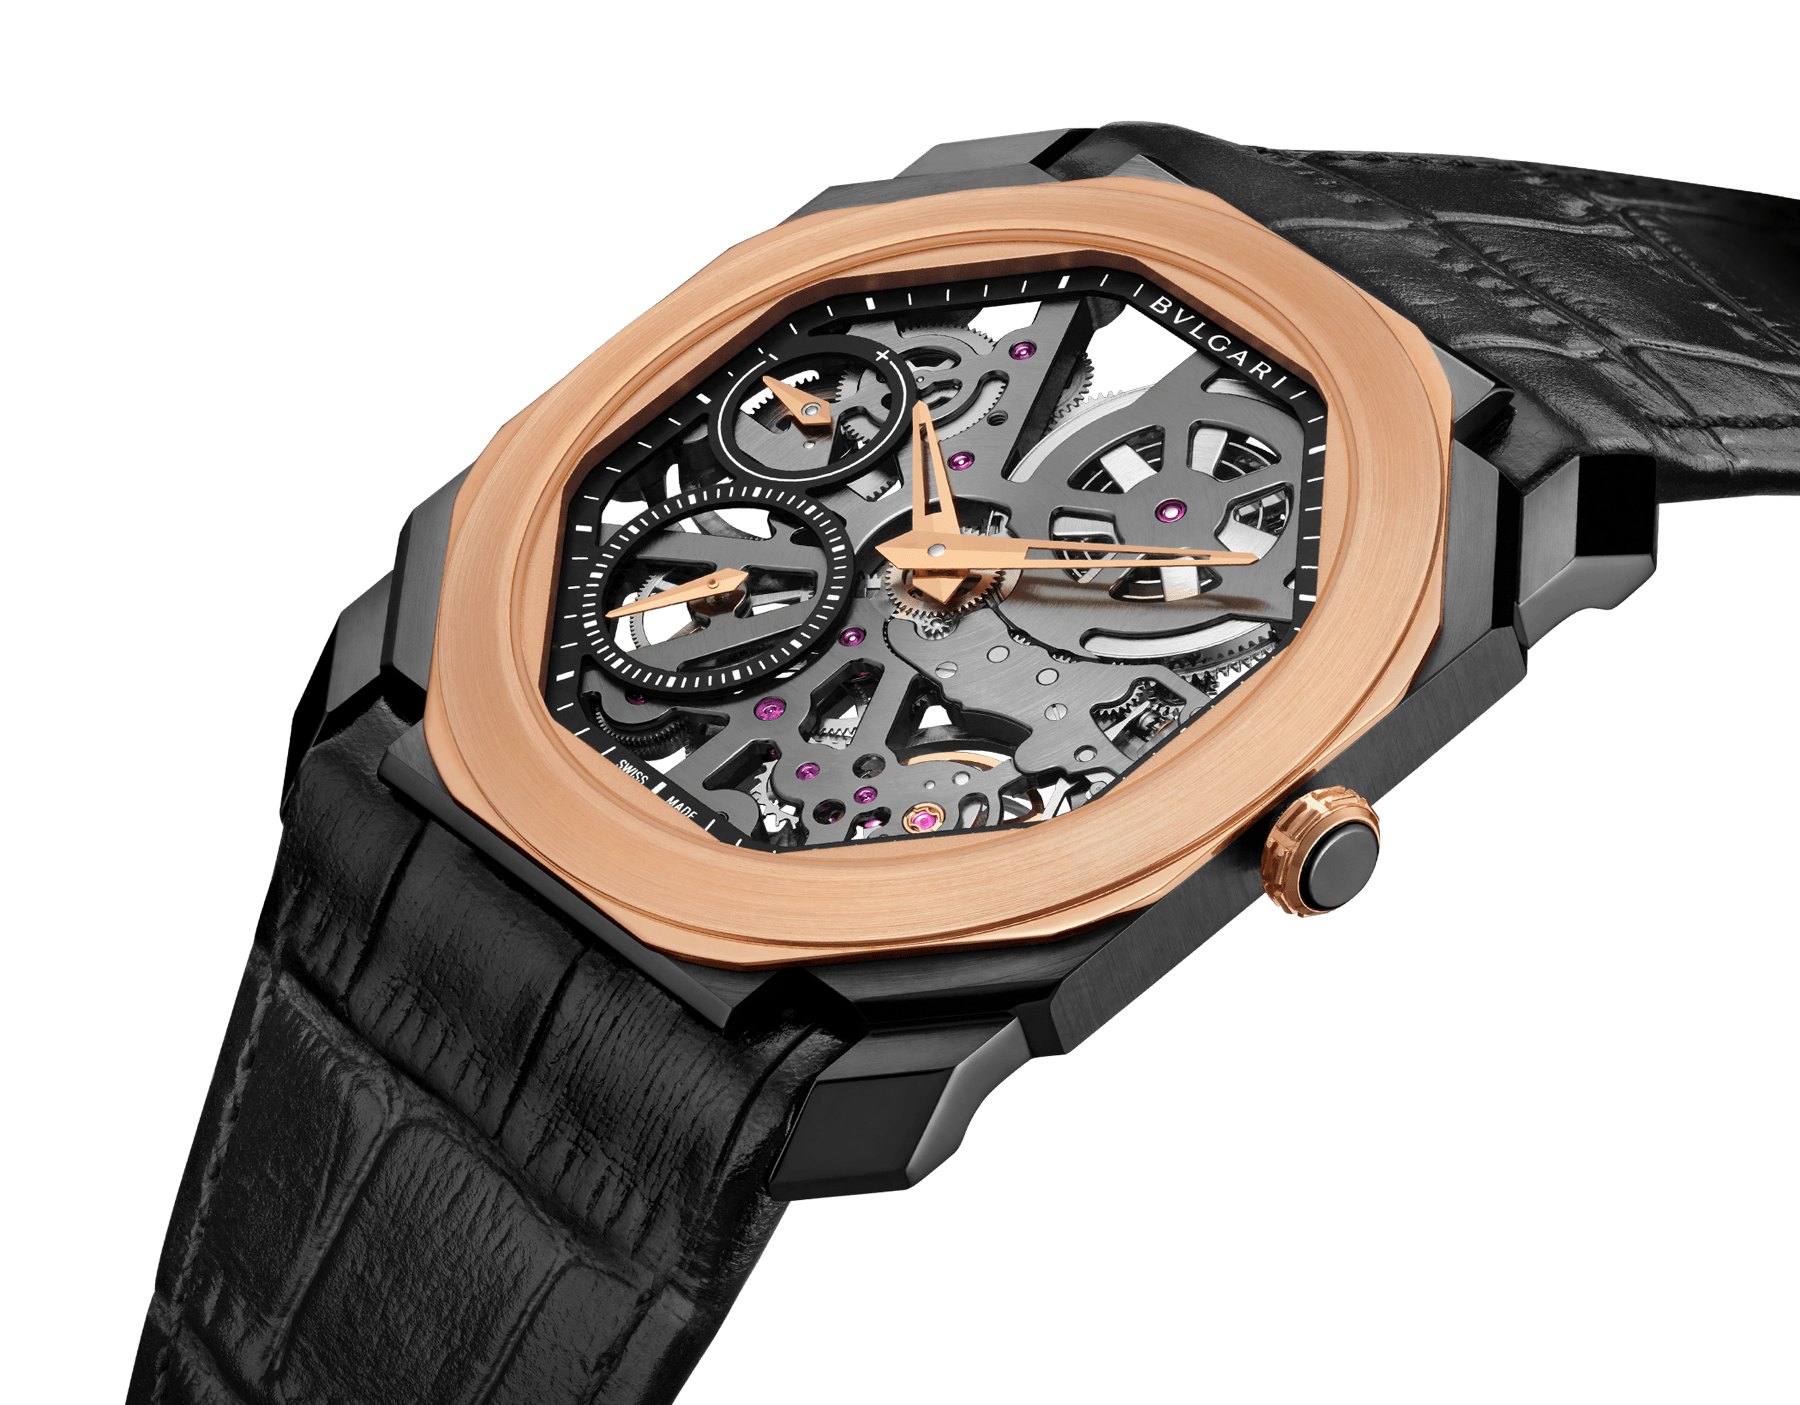 Octo Finissimo watch with extra thin mechanical skeletonized manufacture movement, manual winding, small seconds and power reserve indication, stainless steel case treated with black Diamond Like Carbon, 18 kt rose gold bezel, transparent dial and black alligator bracelet. 102469 image 2